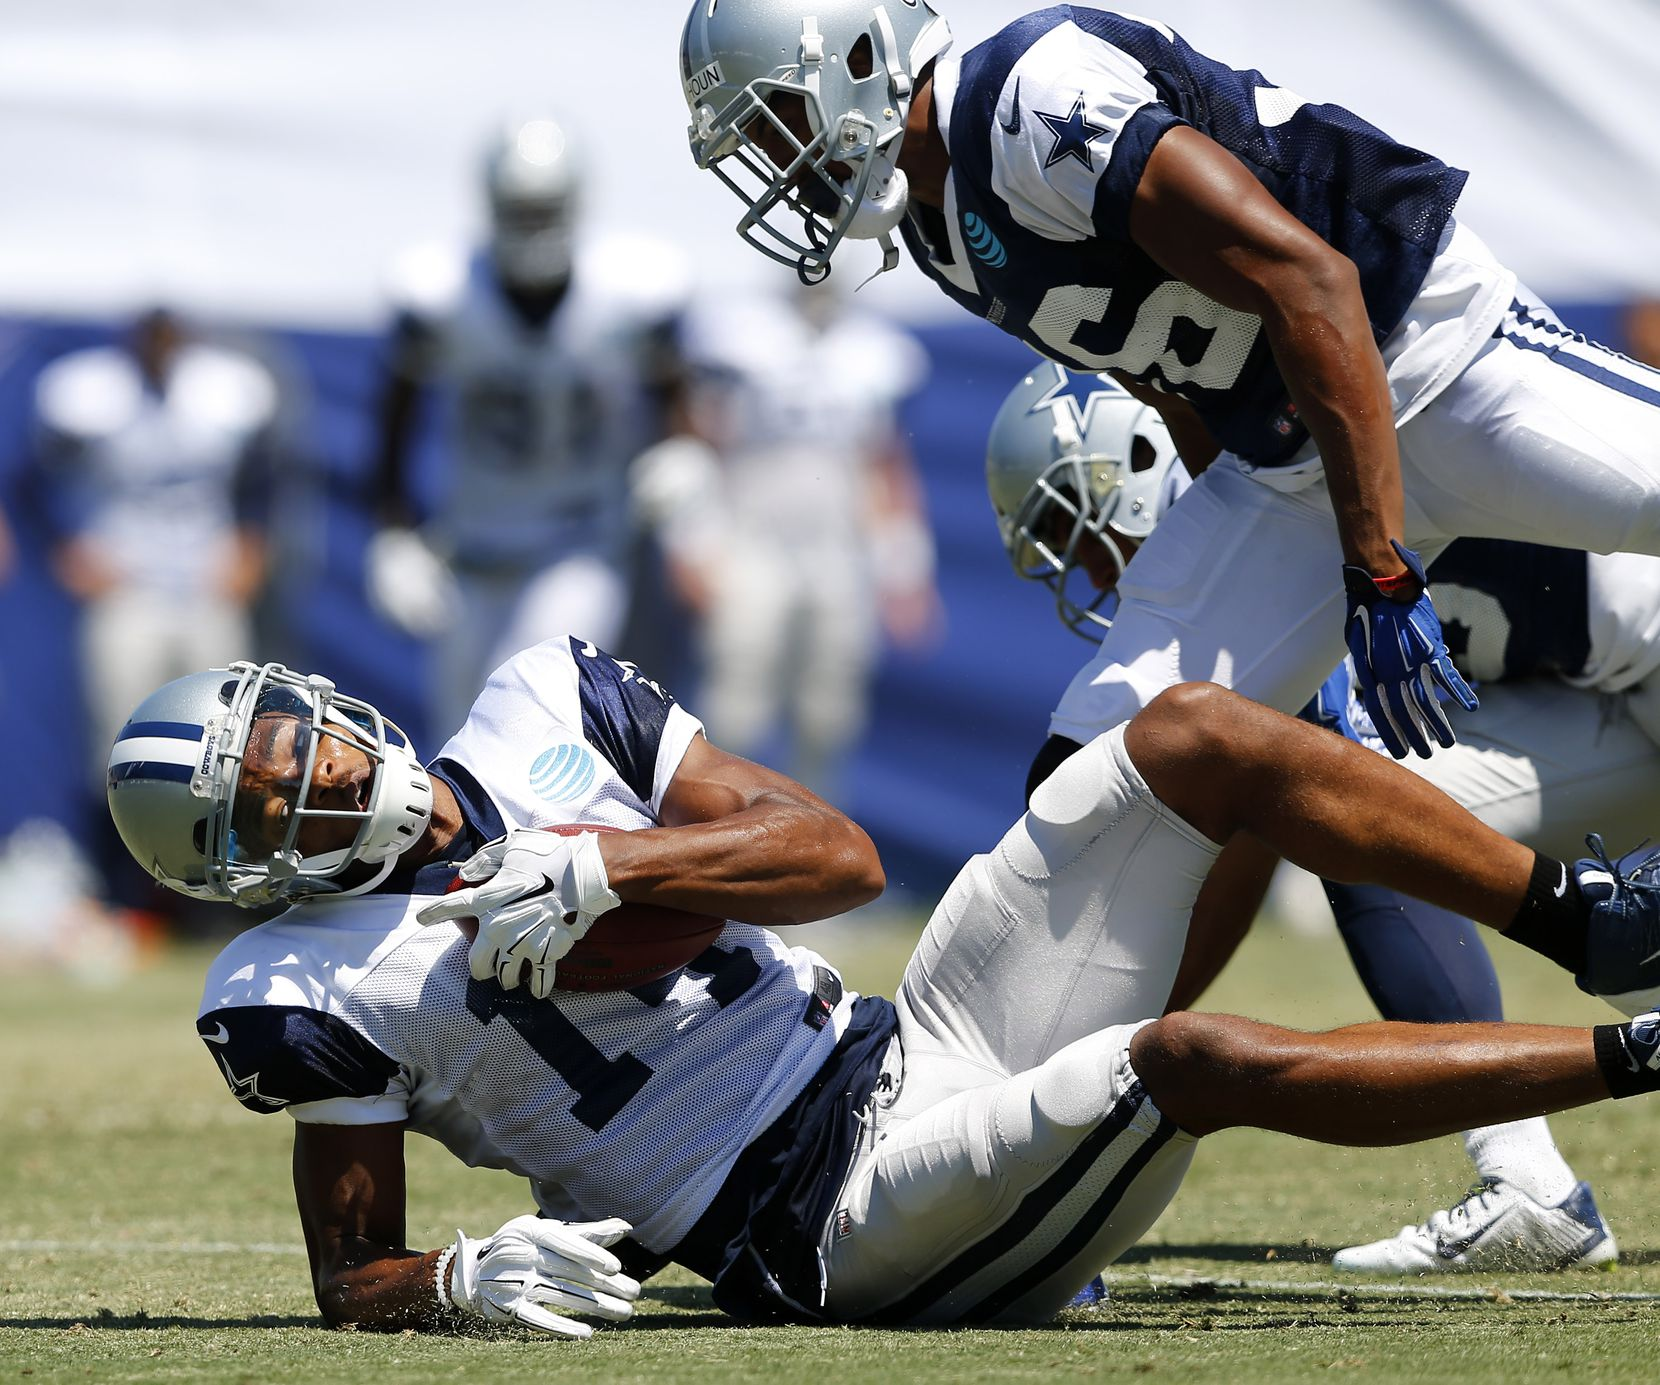 Dallas Cowboys wide receiver Rodney Smith (14) takes a shot from defensive back Arjen Colquhoun (36) after making a catch during morning practice at training camp in Oxnard, California, Thursday, August 11, 2016. (Tom Fox/The Dallas Morning News)